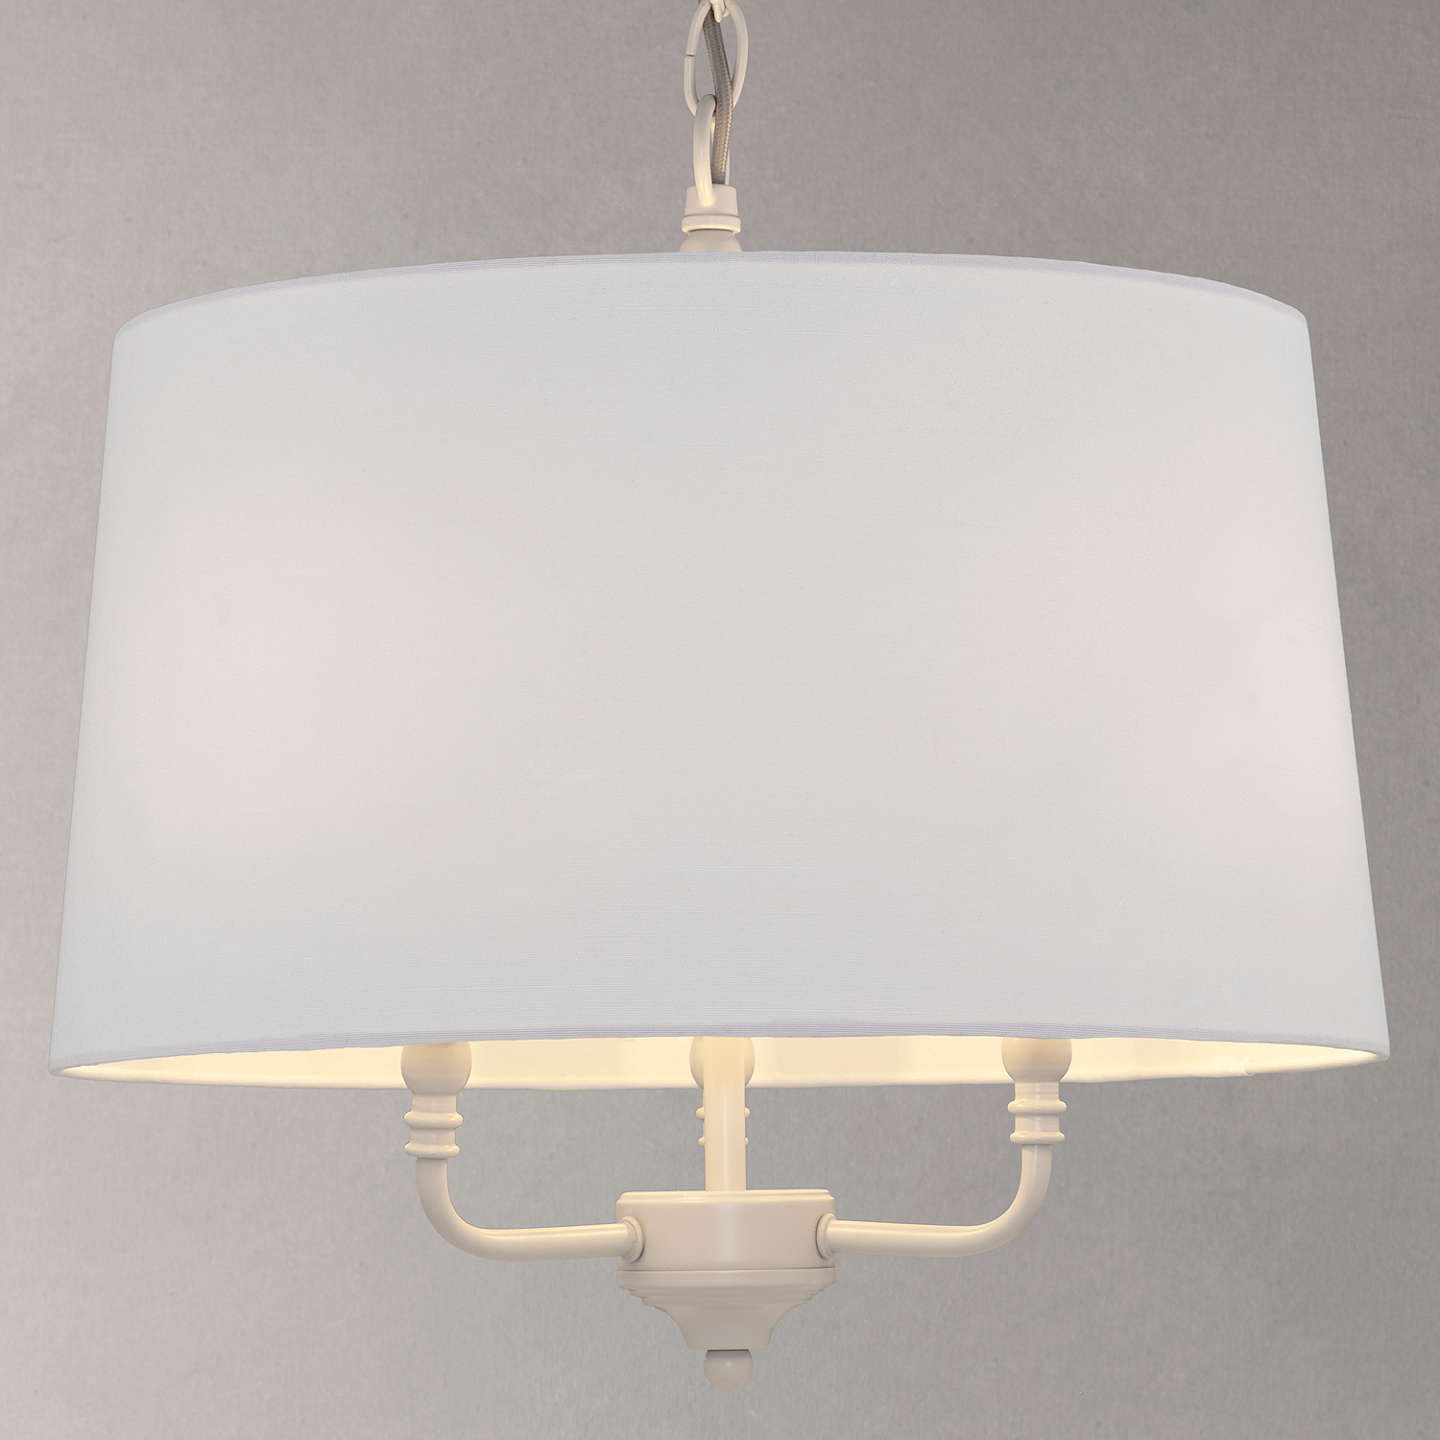 John lewis isabel ceiling pendant light grey at john lewis buyjohn lewis isabel ceiling pendant light grey online at johnlewis mozeypictures